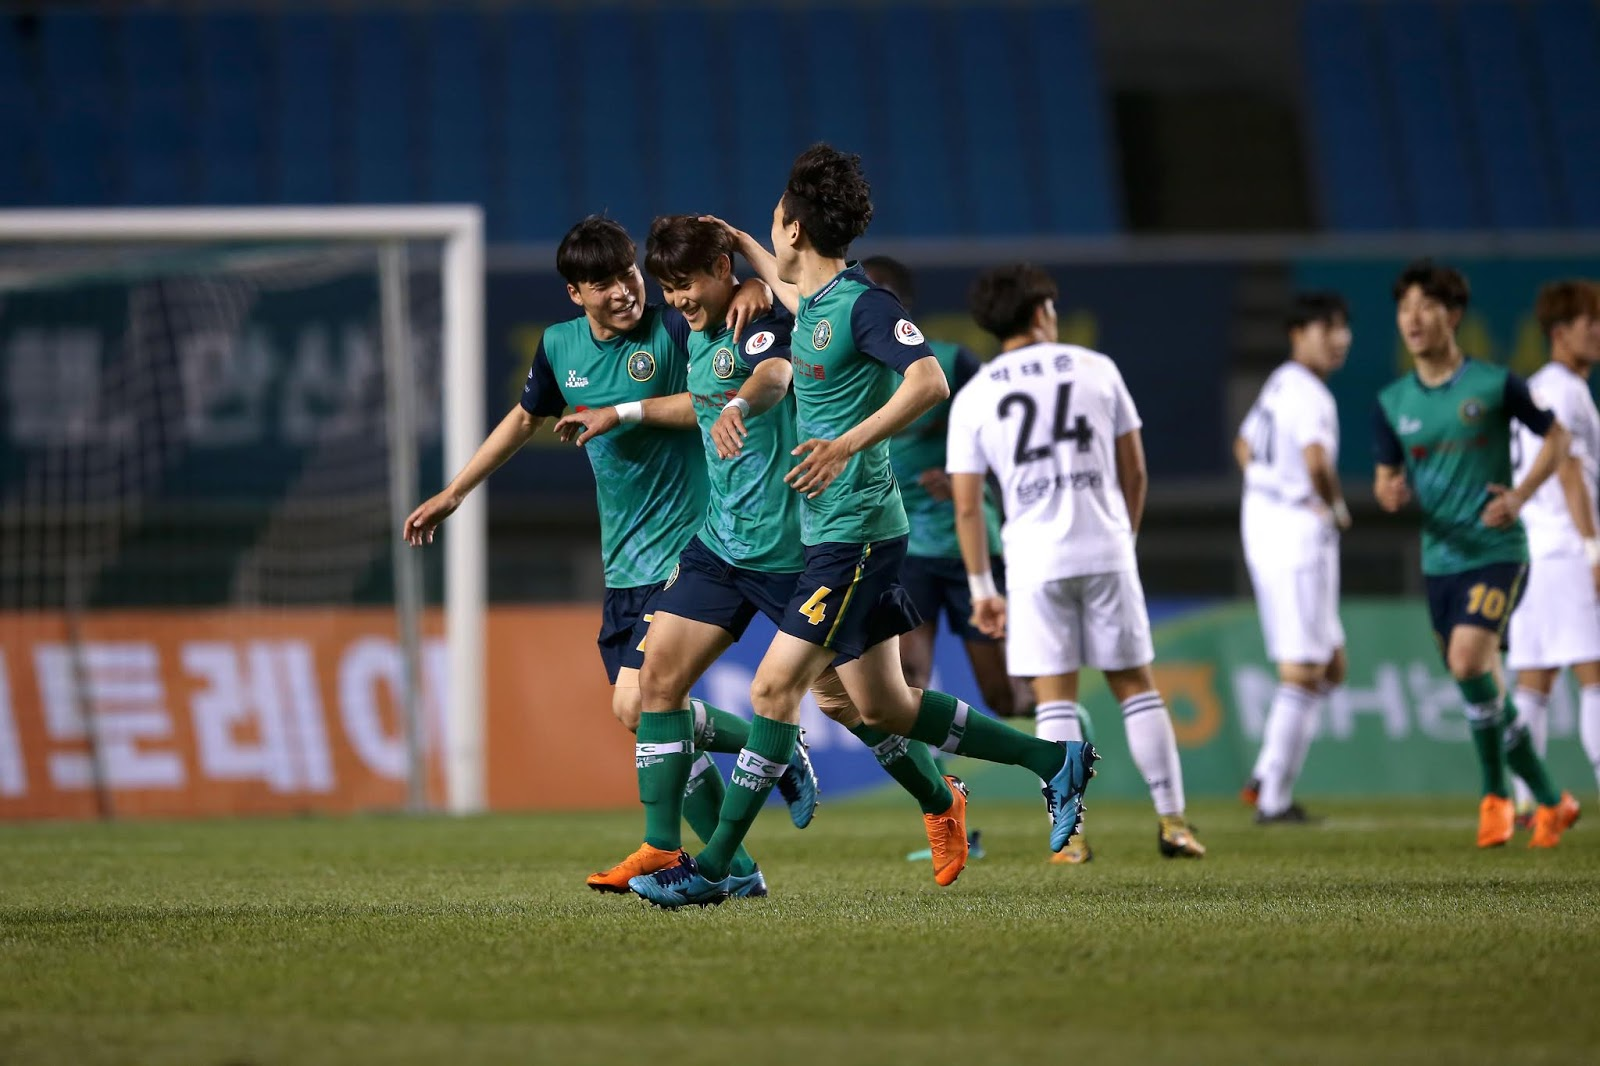 Preview: Bucheon 1995 Vs Ansan Greeners K League 2 Round 13